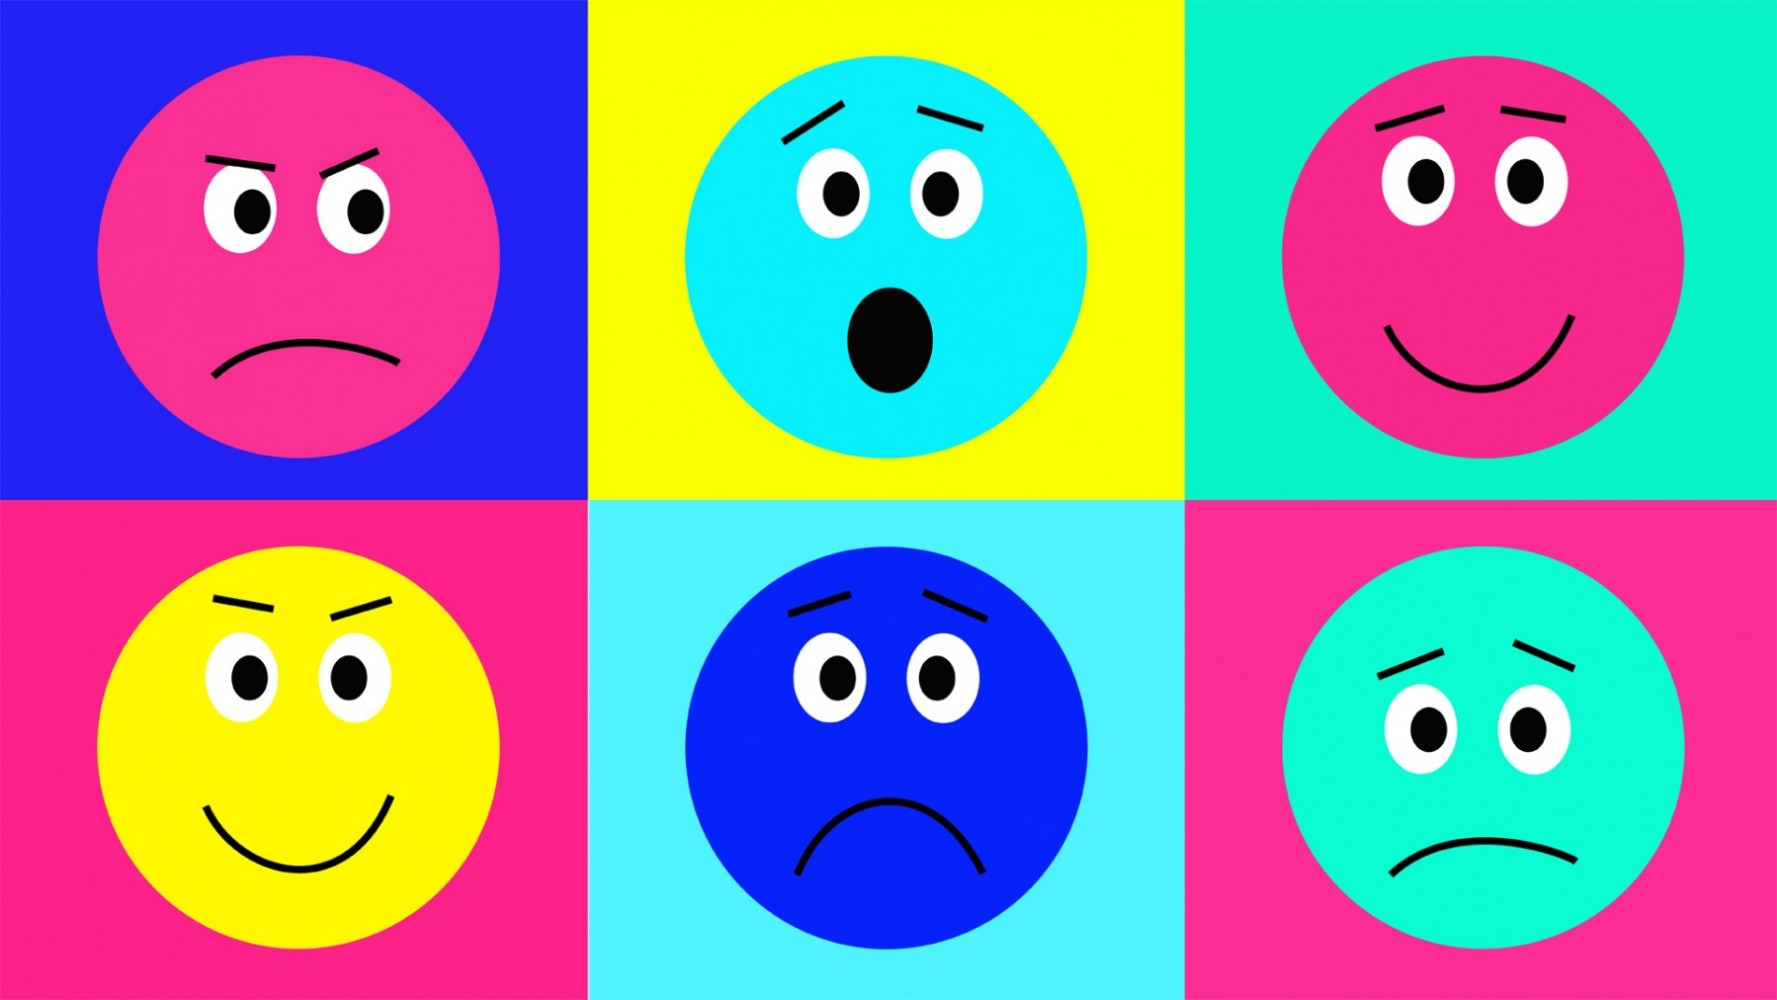 Illustration with six emoticons representing different emotions